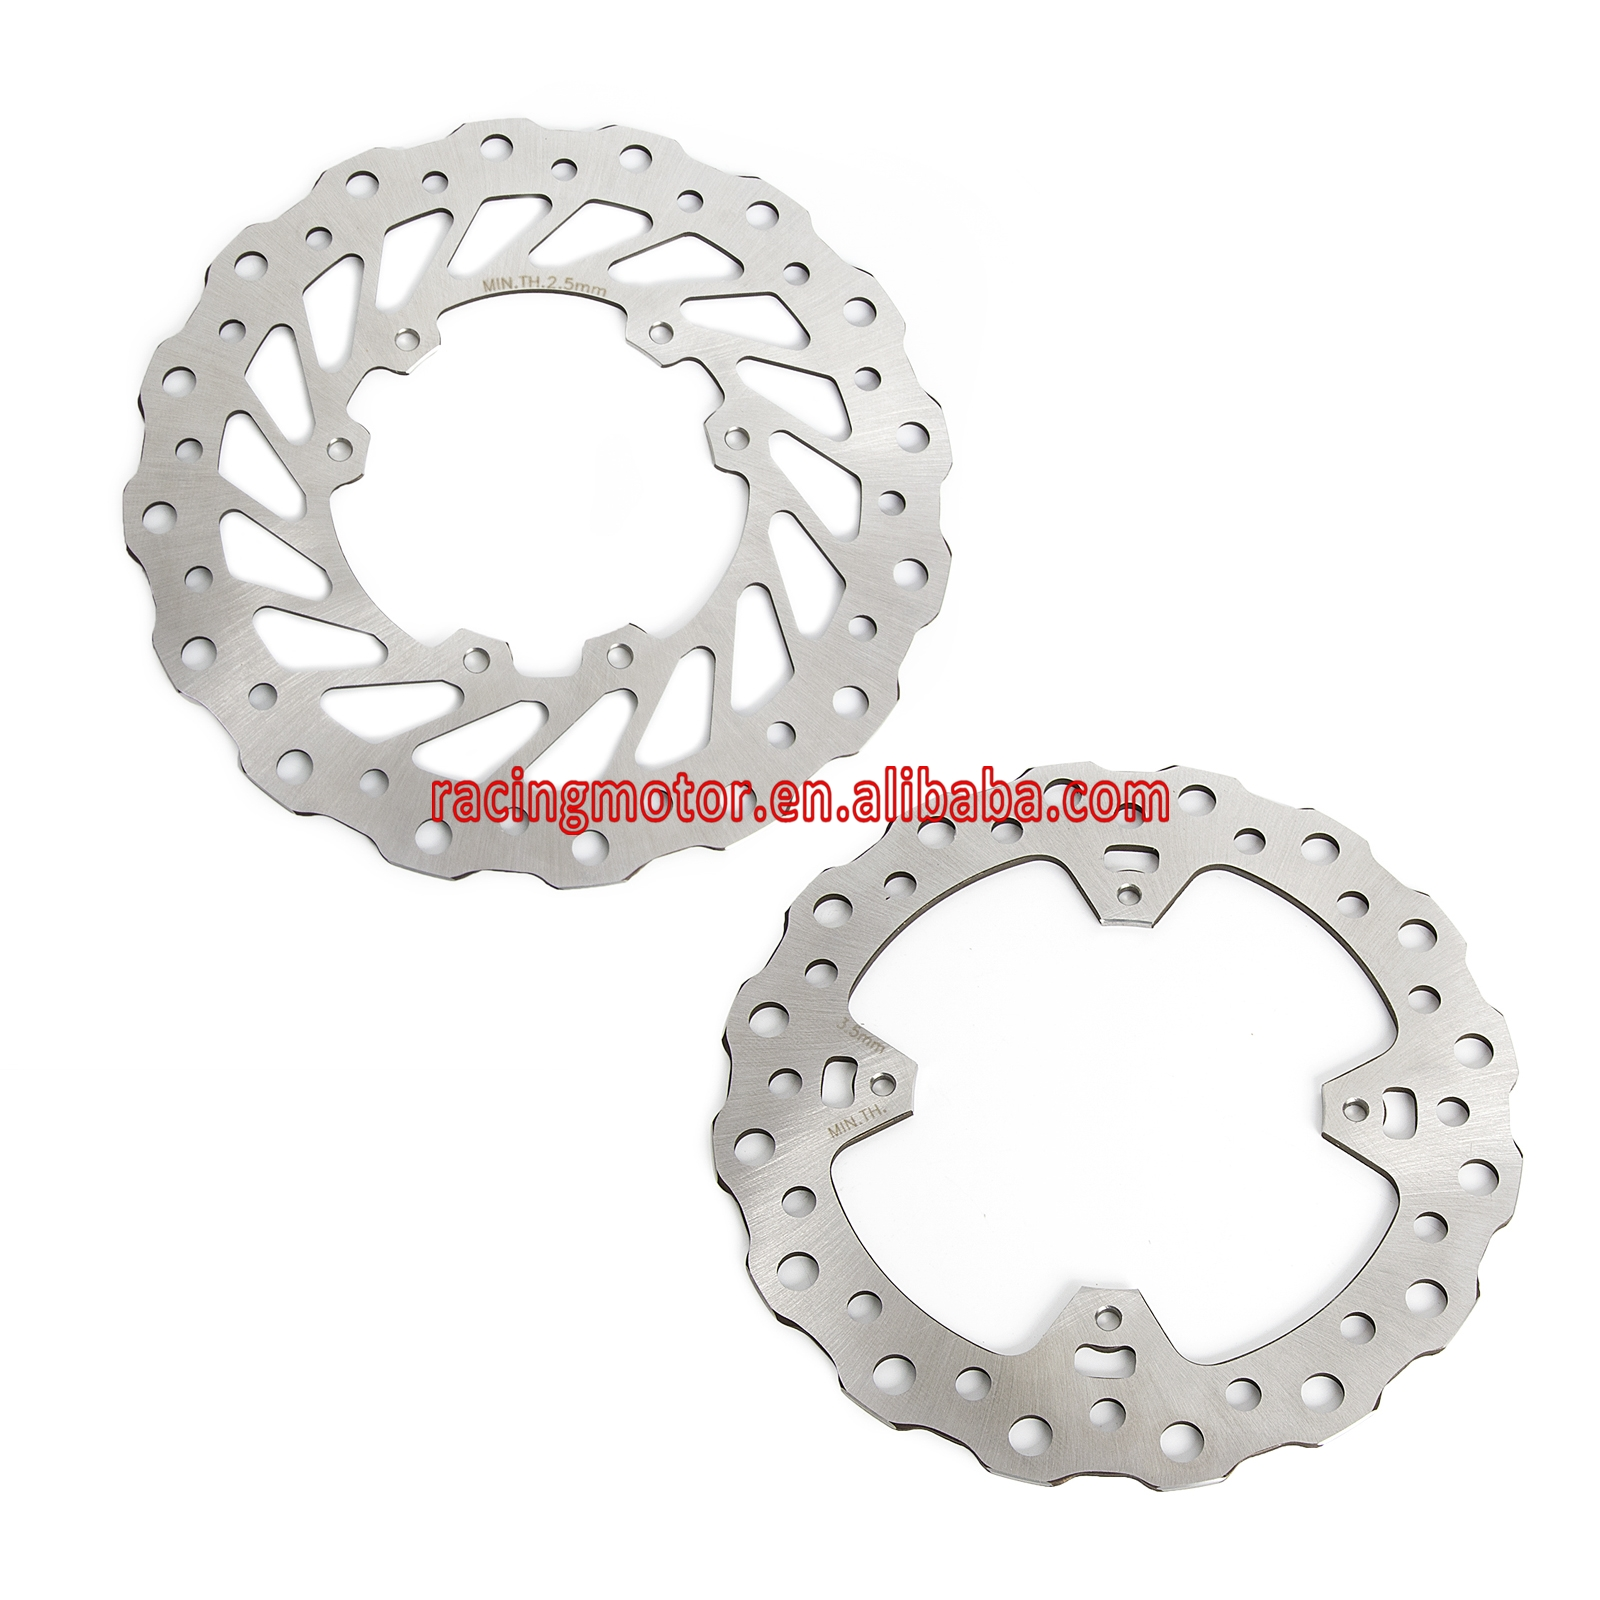 Motorcycle Front Rear Wave Disc Brake Rotor for Honda CR125R CR250R 02 08 CRF250R CRF250X 04